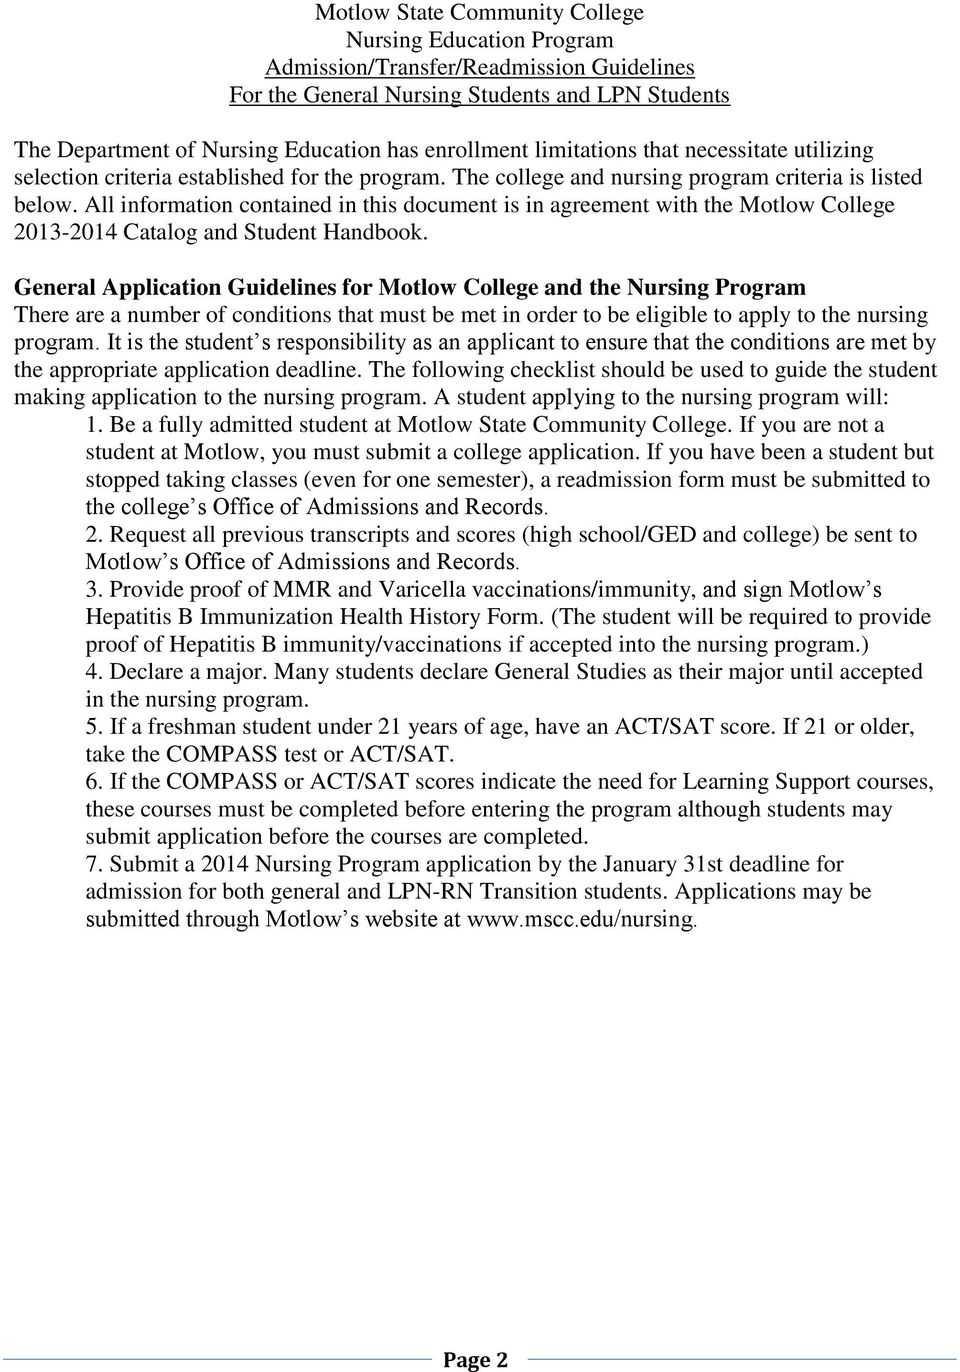 All information contained in this document is in agreement with the Motlow College 2013-2014 Catalog and Student Handbook.